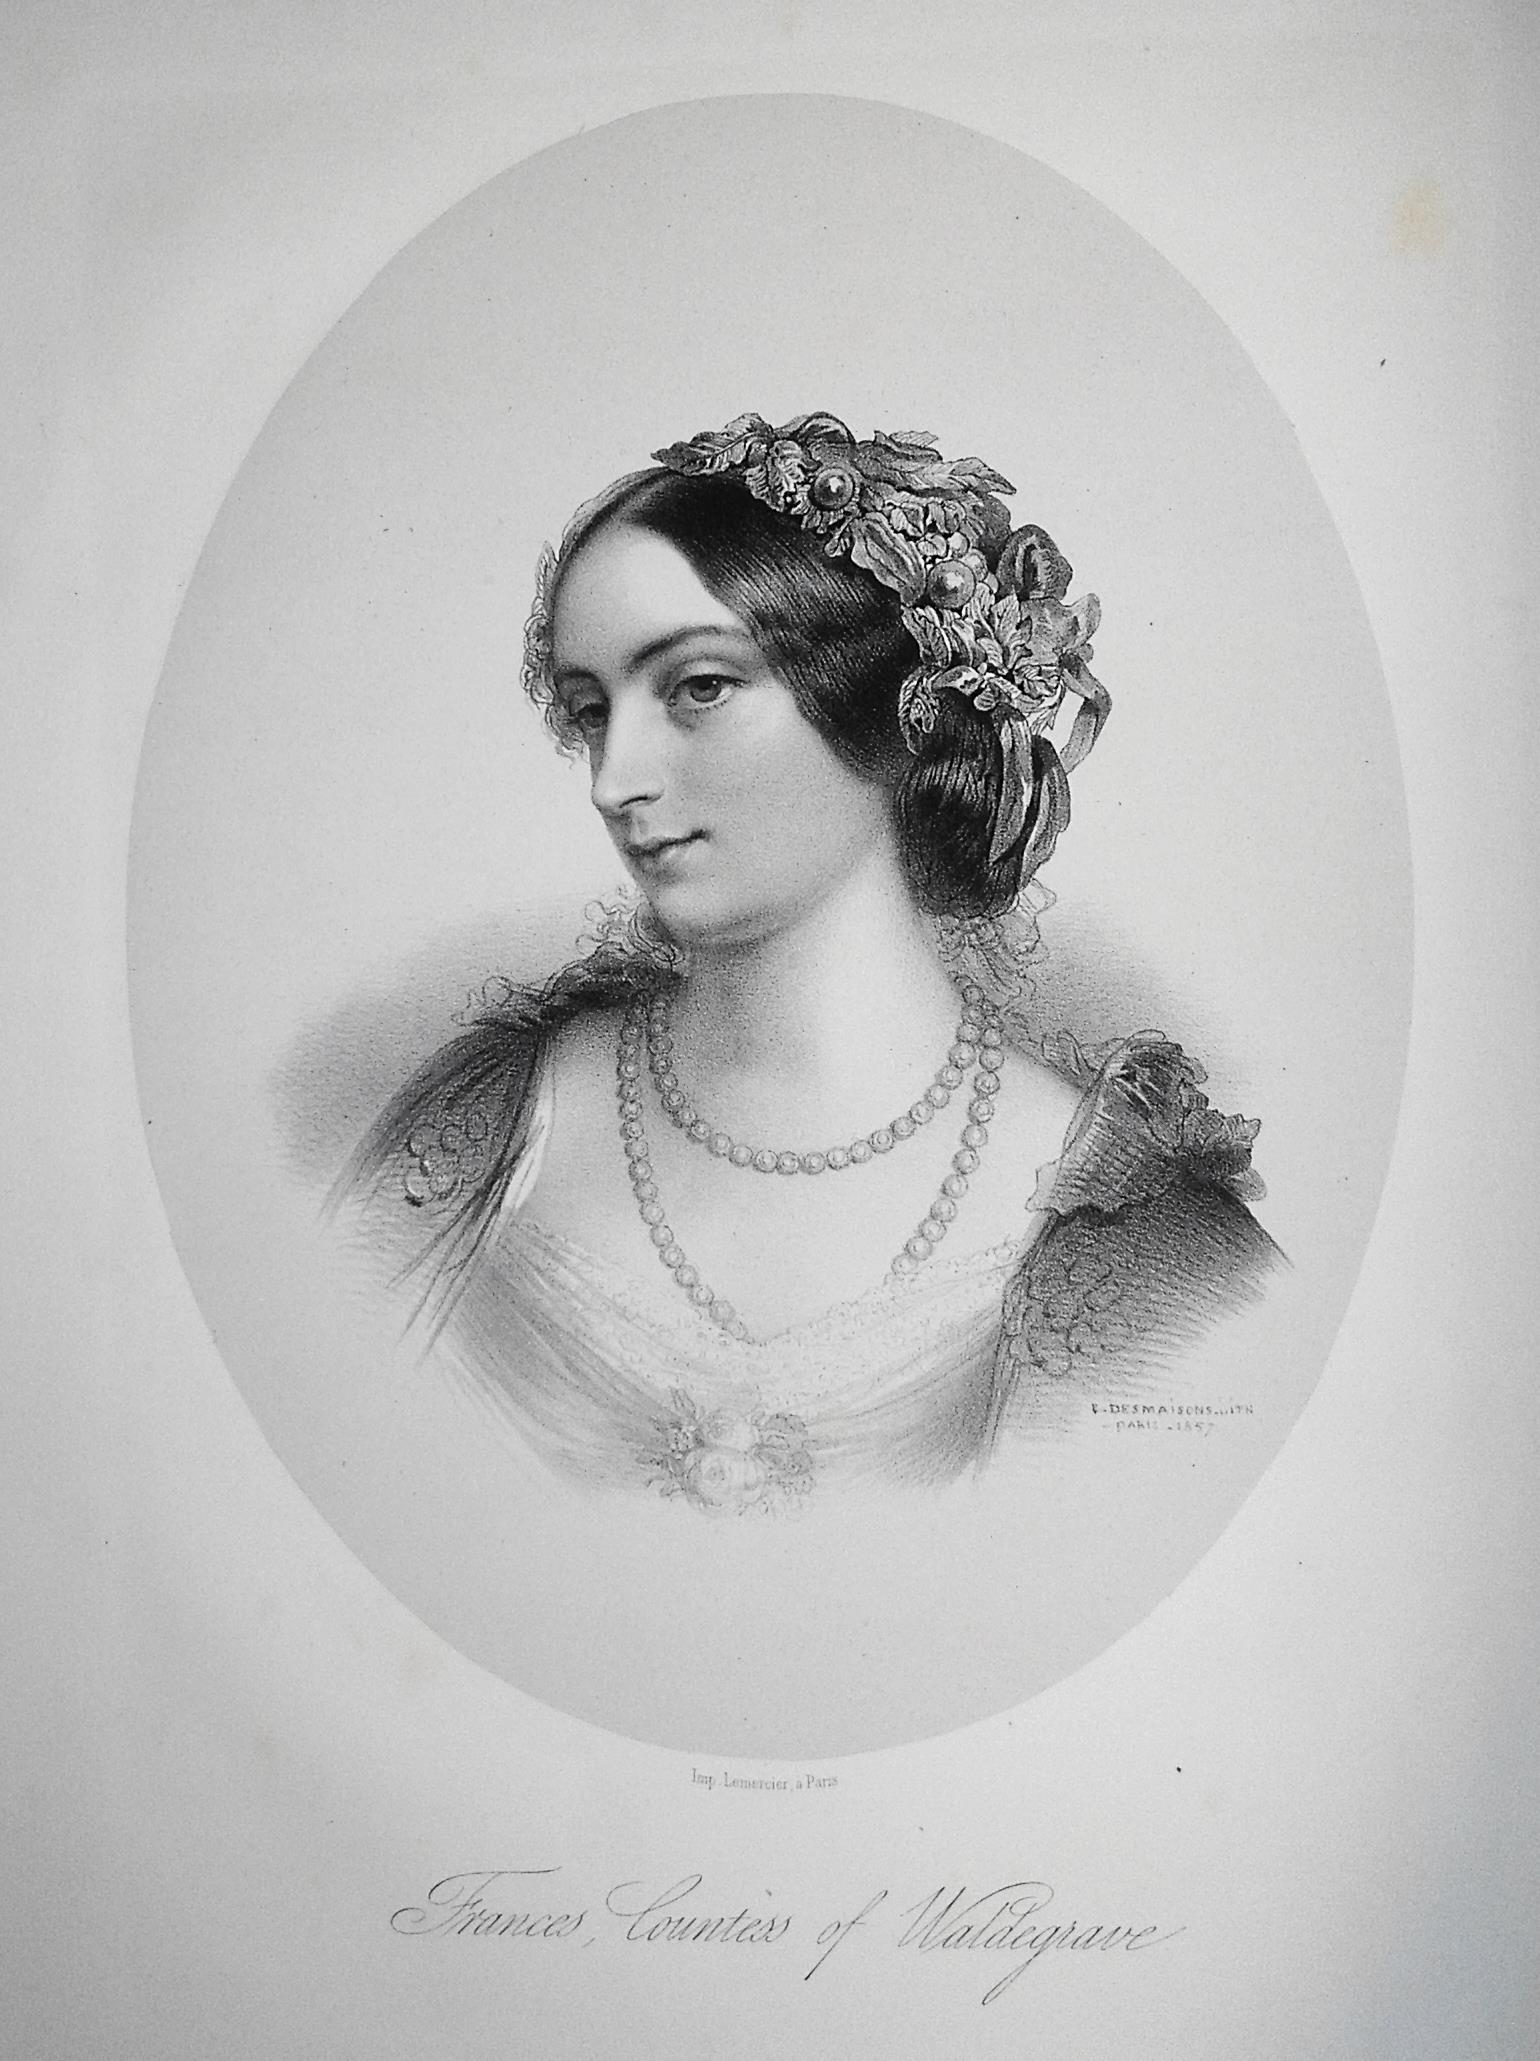 Frances, Countess of Waldegrave